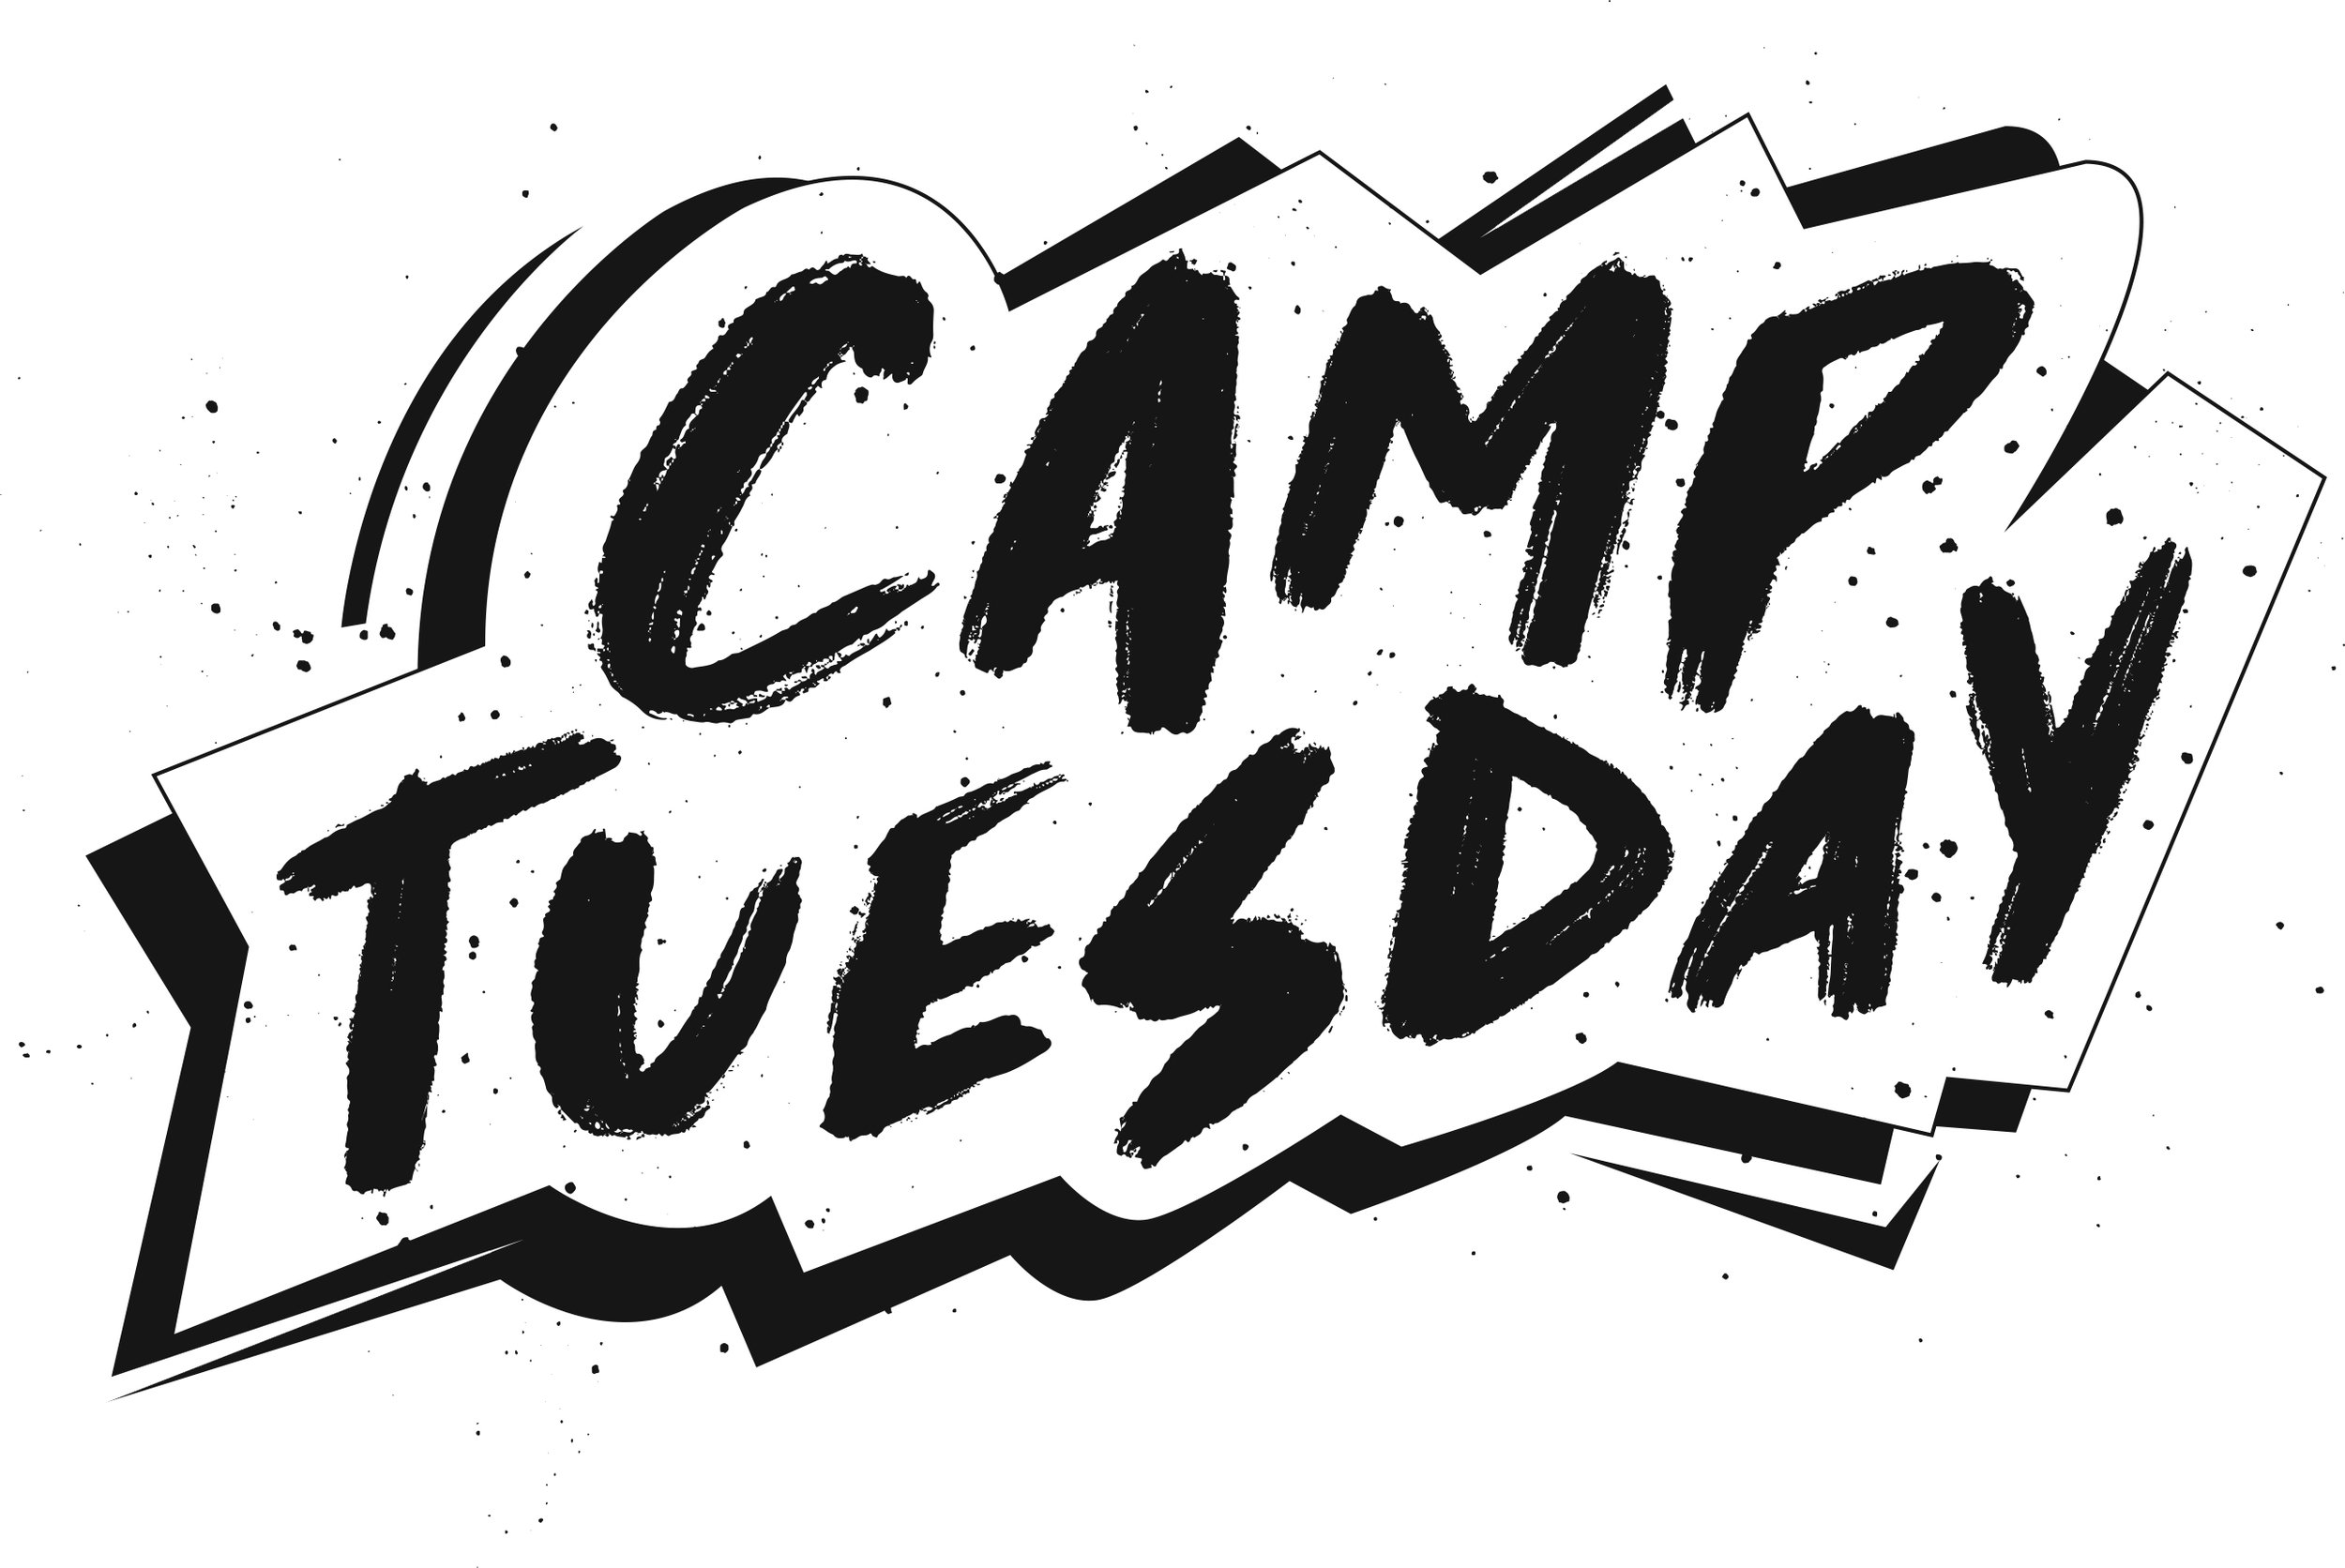 Camp Tuesday - Every Tuesday during the summer months, Camp Tuesday hits the Rolling Prairie Apartment Complex in Sun Prairie! Games, crafts, and dinner is provided to kids and residents. Volunteers will be needed this next Summer.